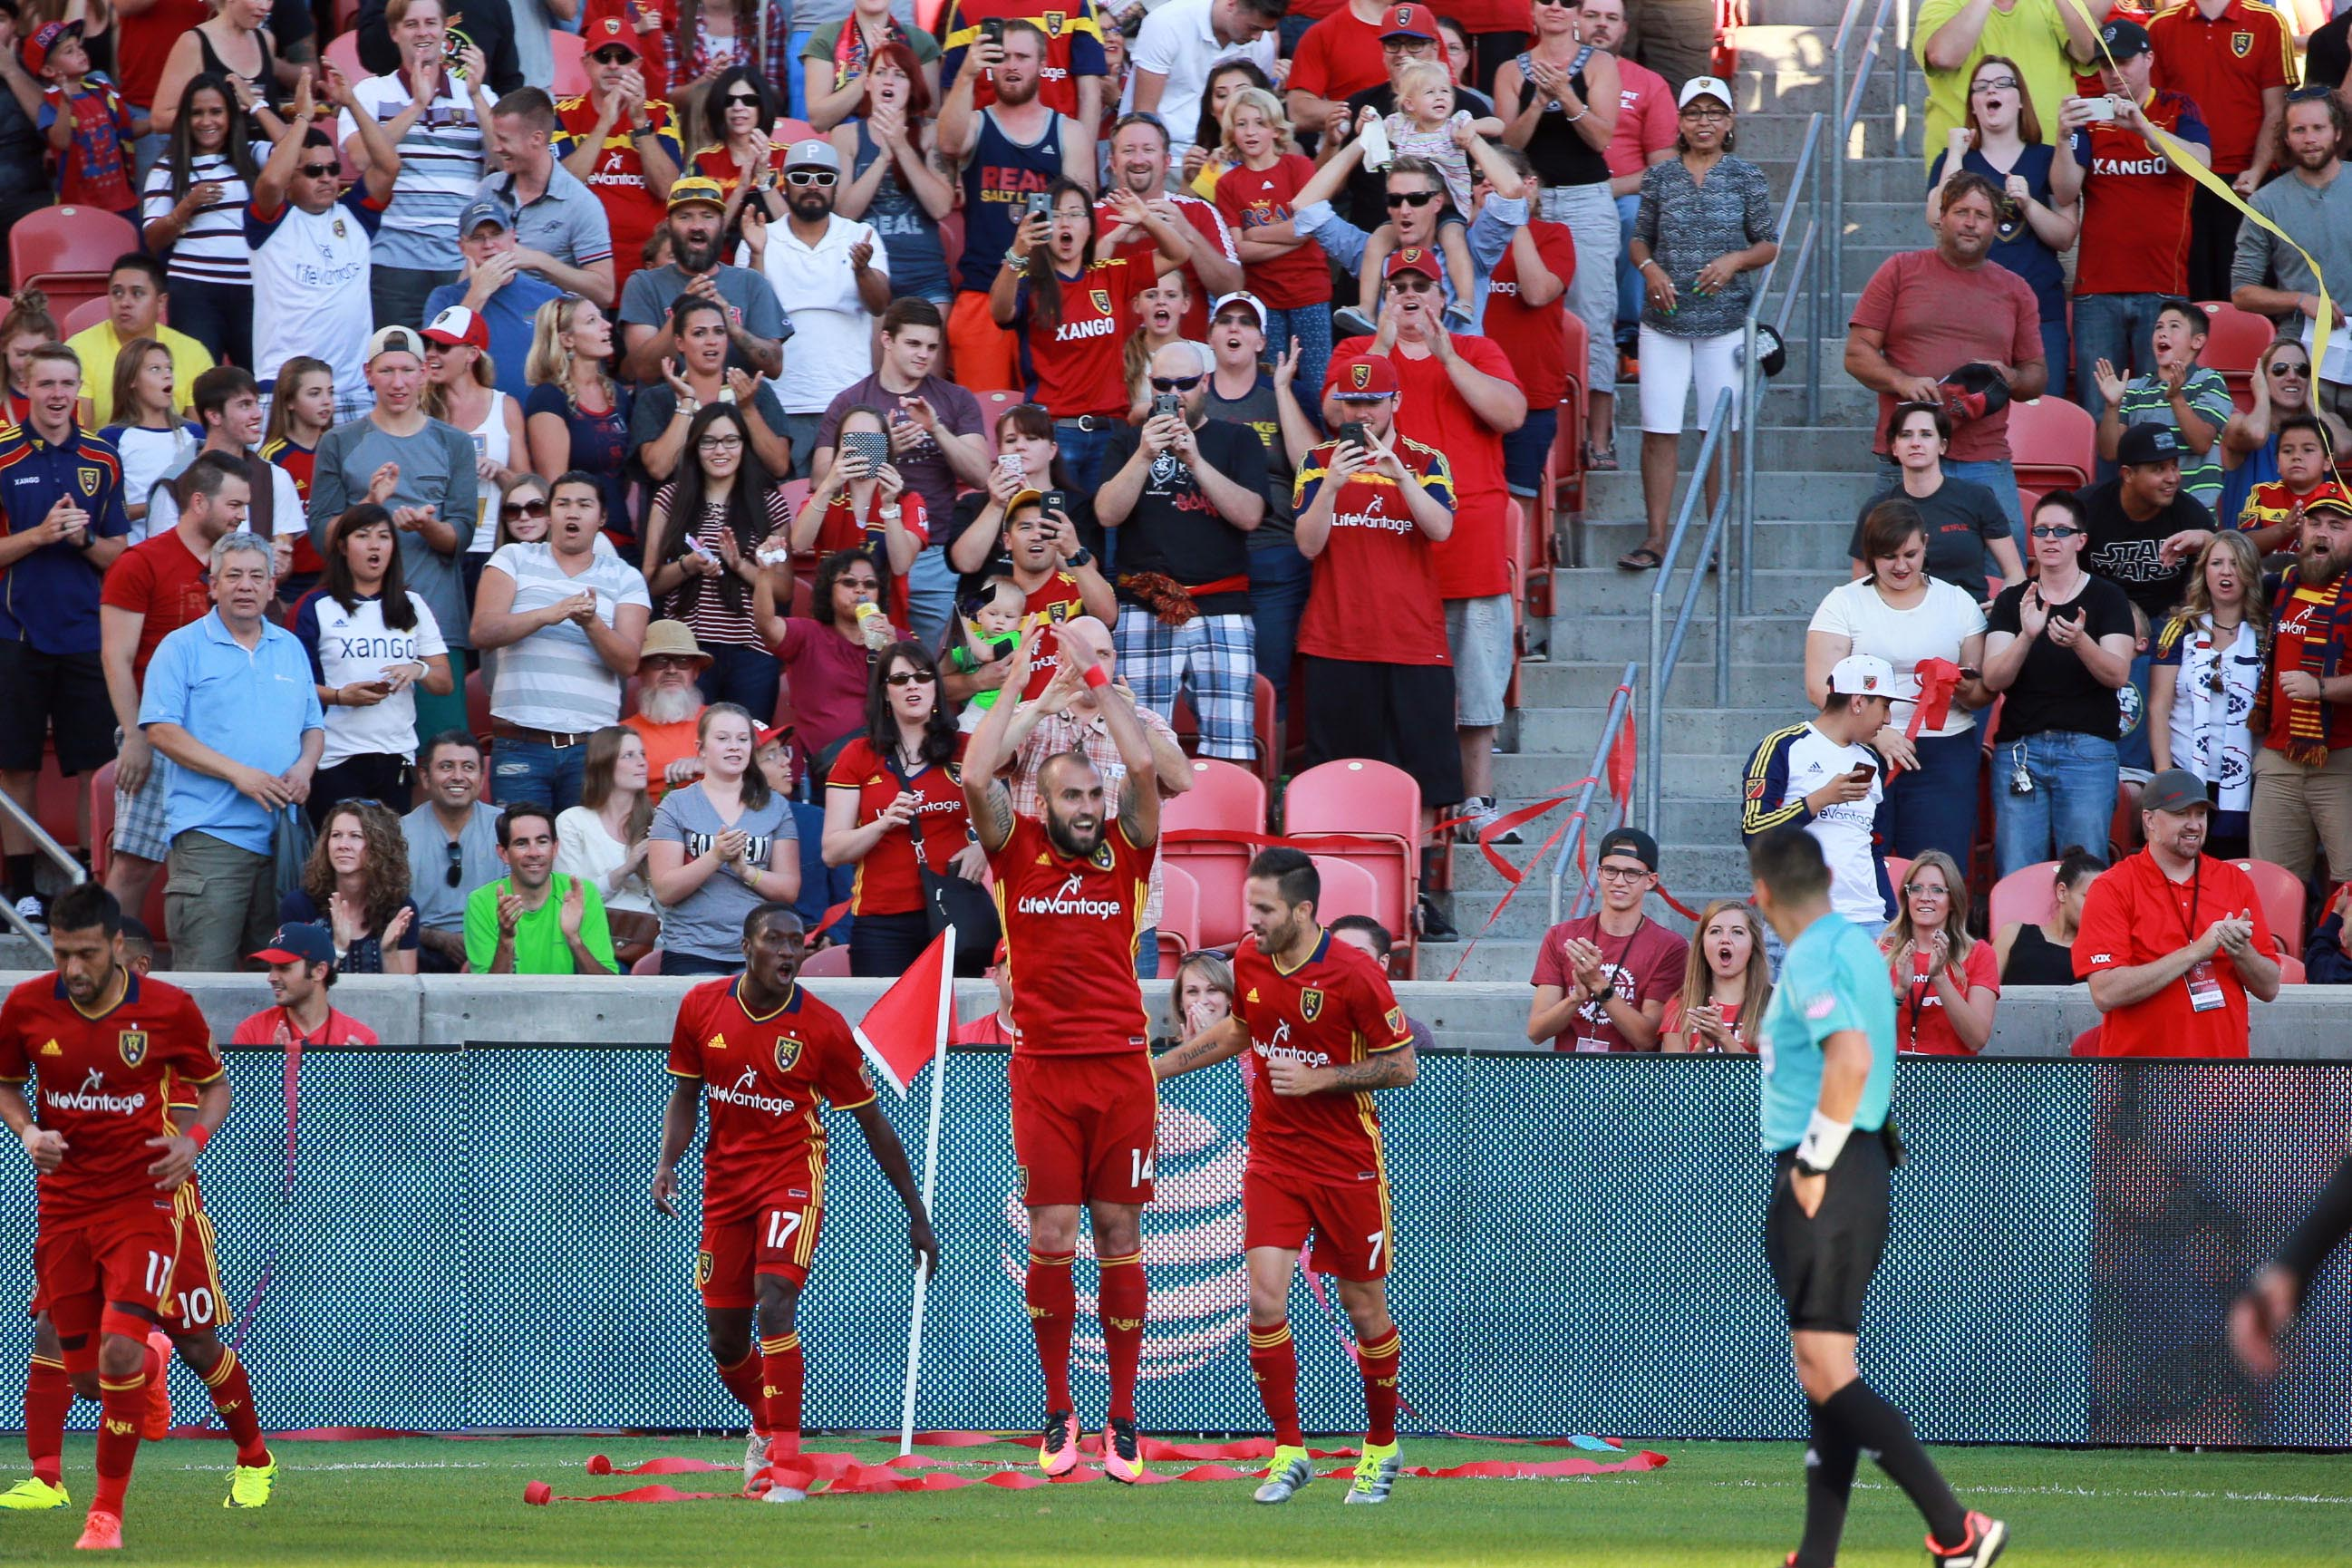 Emmanuel Boateng torments RSL with first-half brace